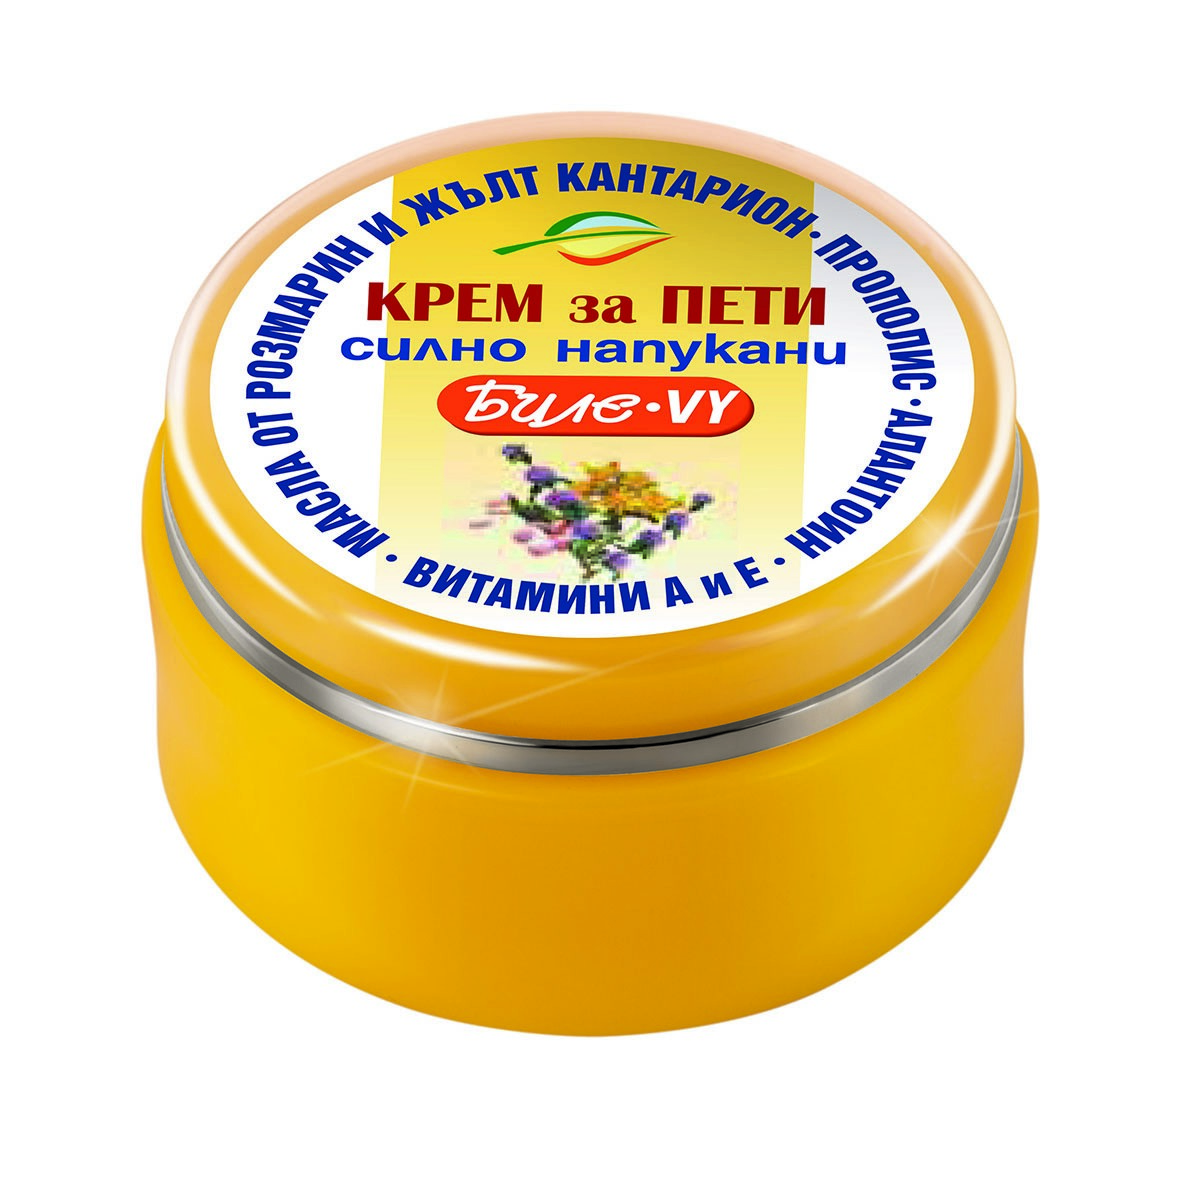 Cream-vaseline for very dry and cracked heels Bille-VY Bodi Beauty